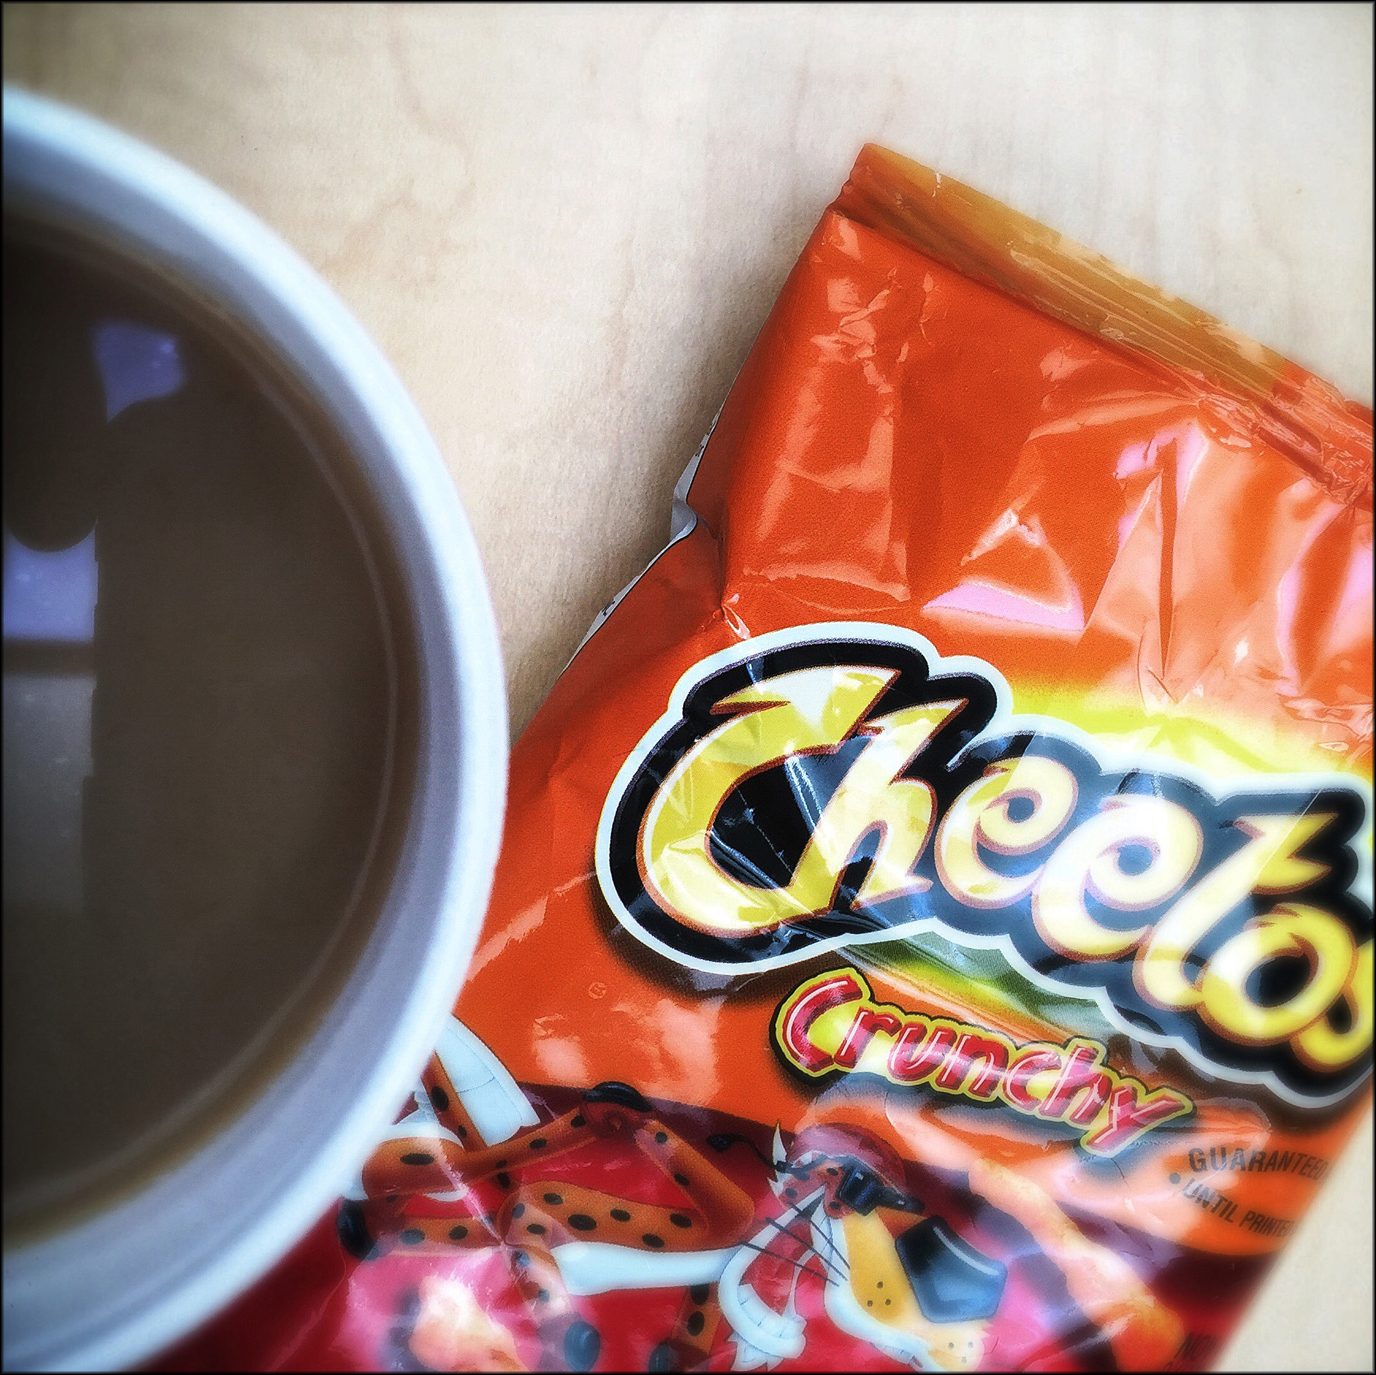 2016 Chicago, Coffee and Cheetos